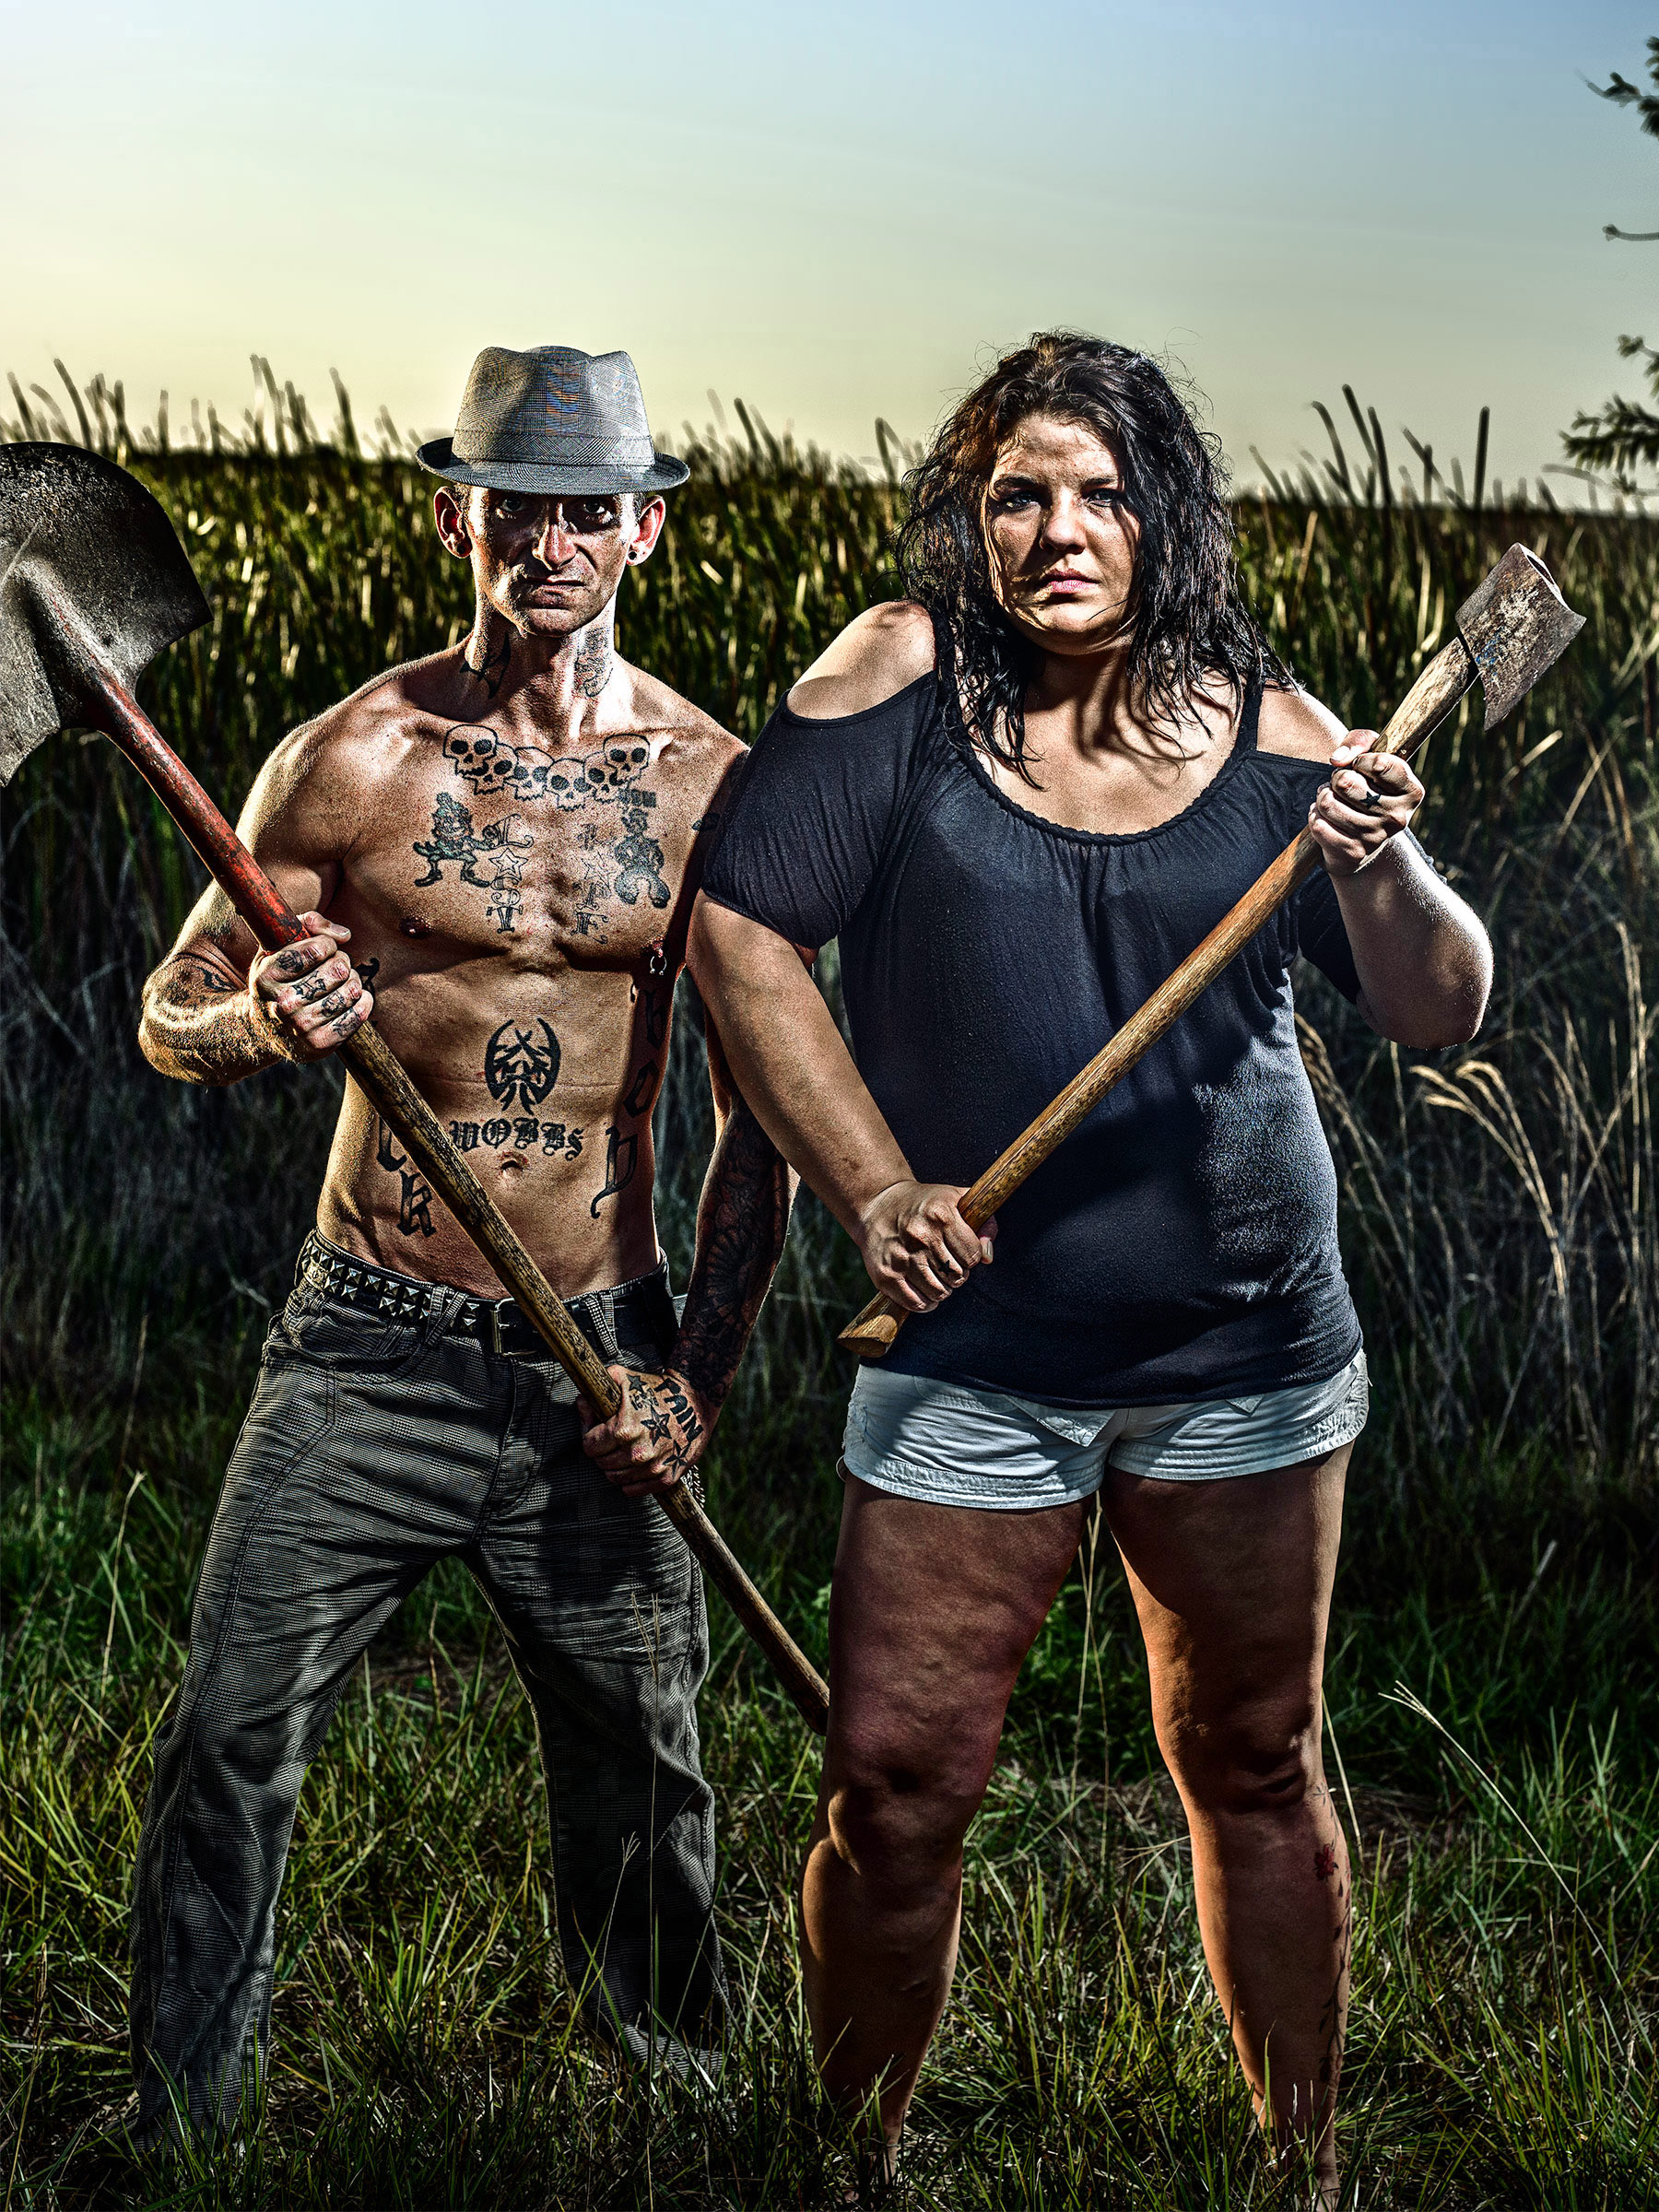 AXE TWINS GUARDIANS of the EVERGLADES FLORIDA NO TRESPASSING CLOSED NIGHT WARNING BEST EDITORIAL PORTRAIT PHOTOGRAPHER ADVERTISING NYC AWARD WINNING PHOTOGRAPHY NY LA BERLIN DENVER MUNICH PARIS LONDON Wick Beavers NYC Photographer